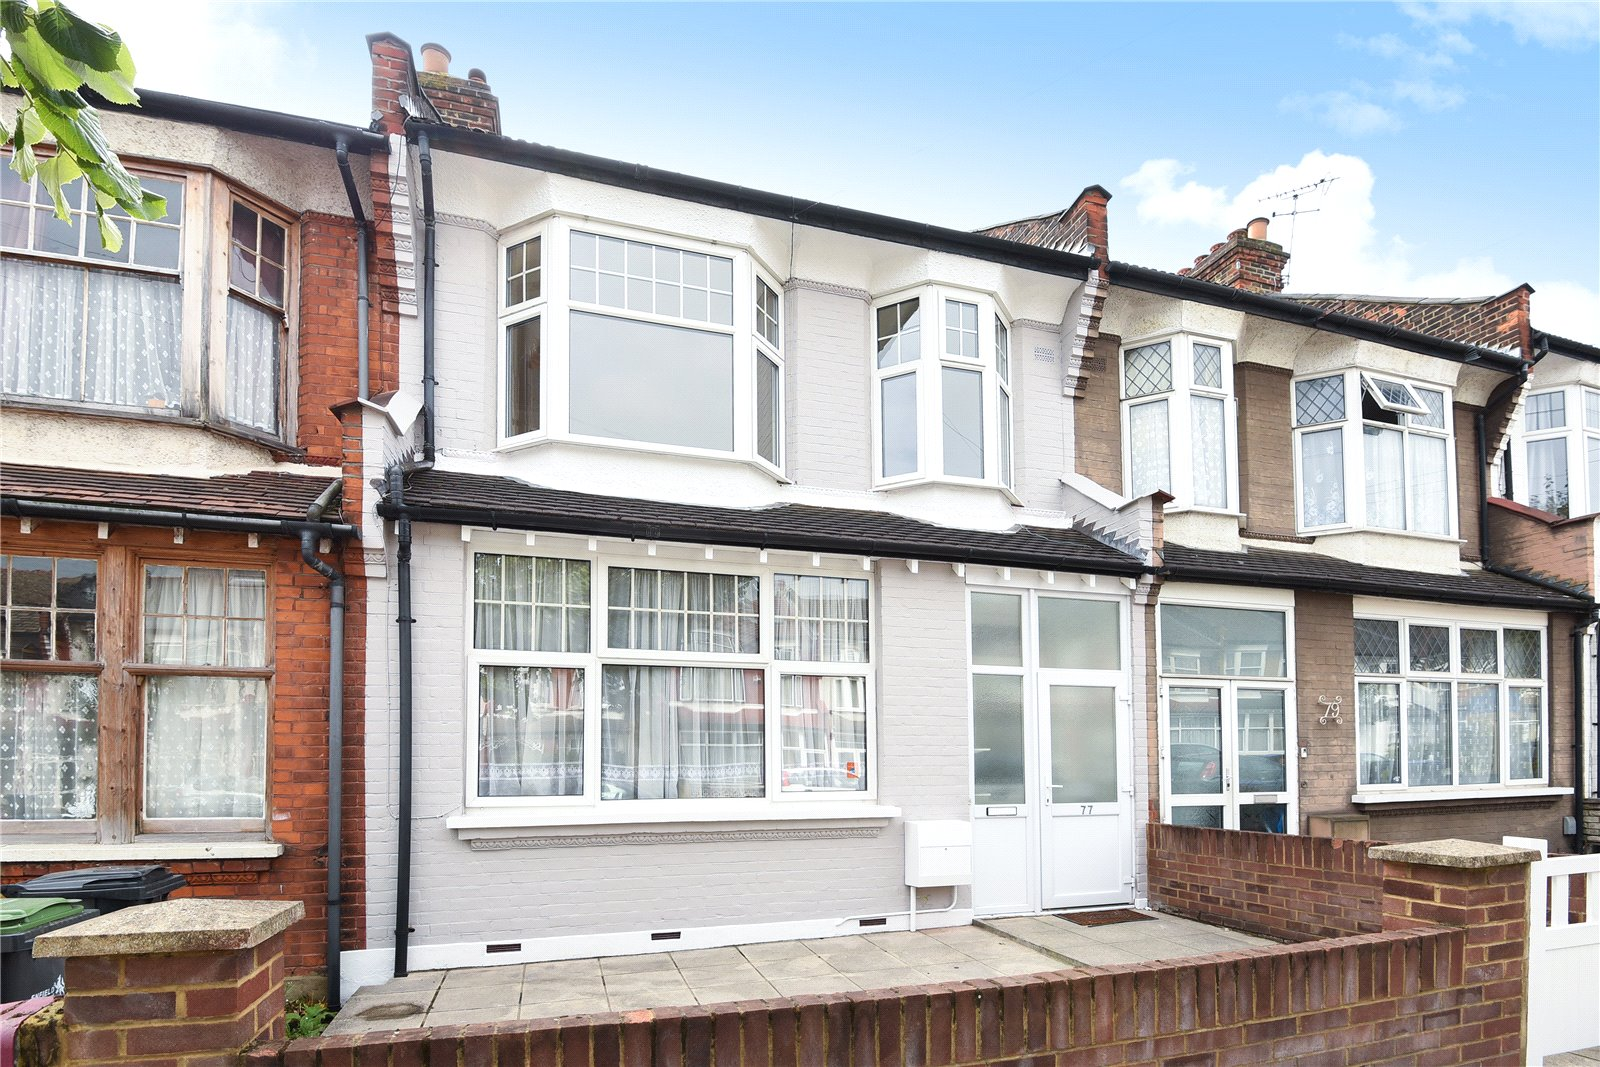 3 Bedrooms Terraced House for sale in Shrewsbury Road Bounds Greeen London N11